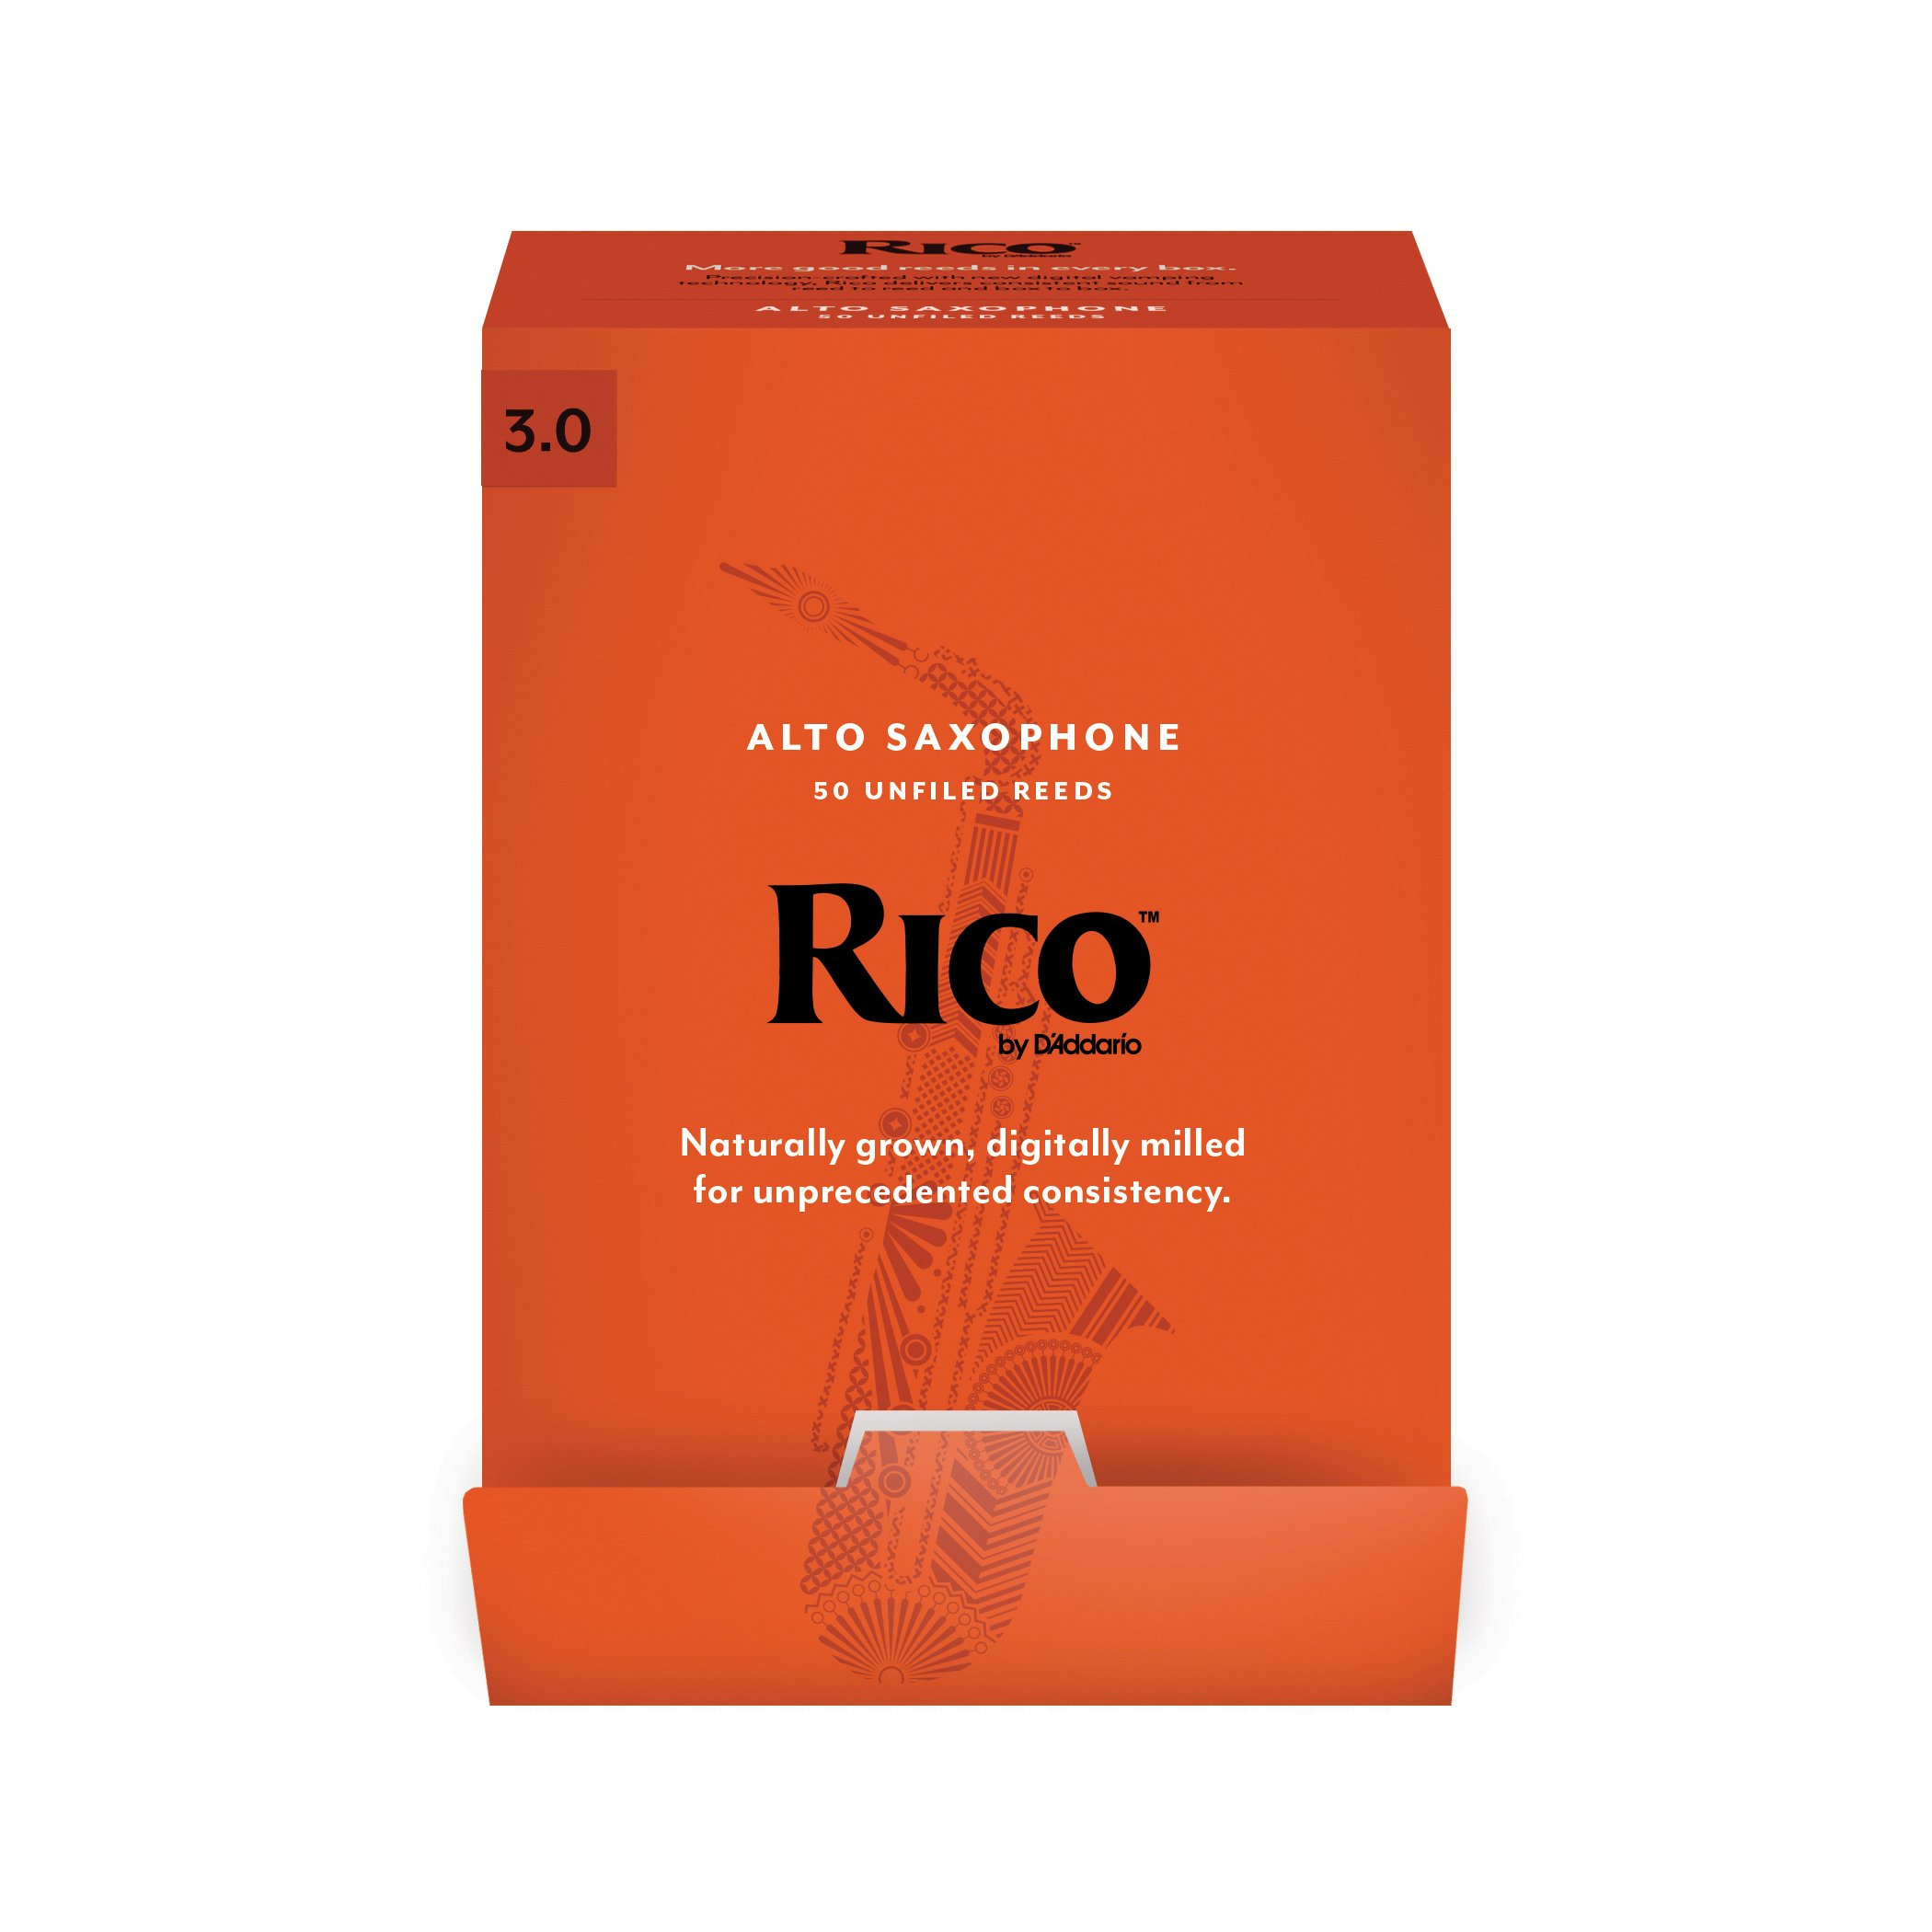 D'Addario Woodwinds Rico by D'Addario Alto Saxophone Reeds, Strength 3.0, 50-pack (RJA0130-B50)